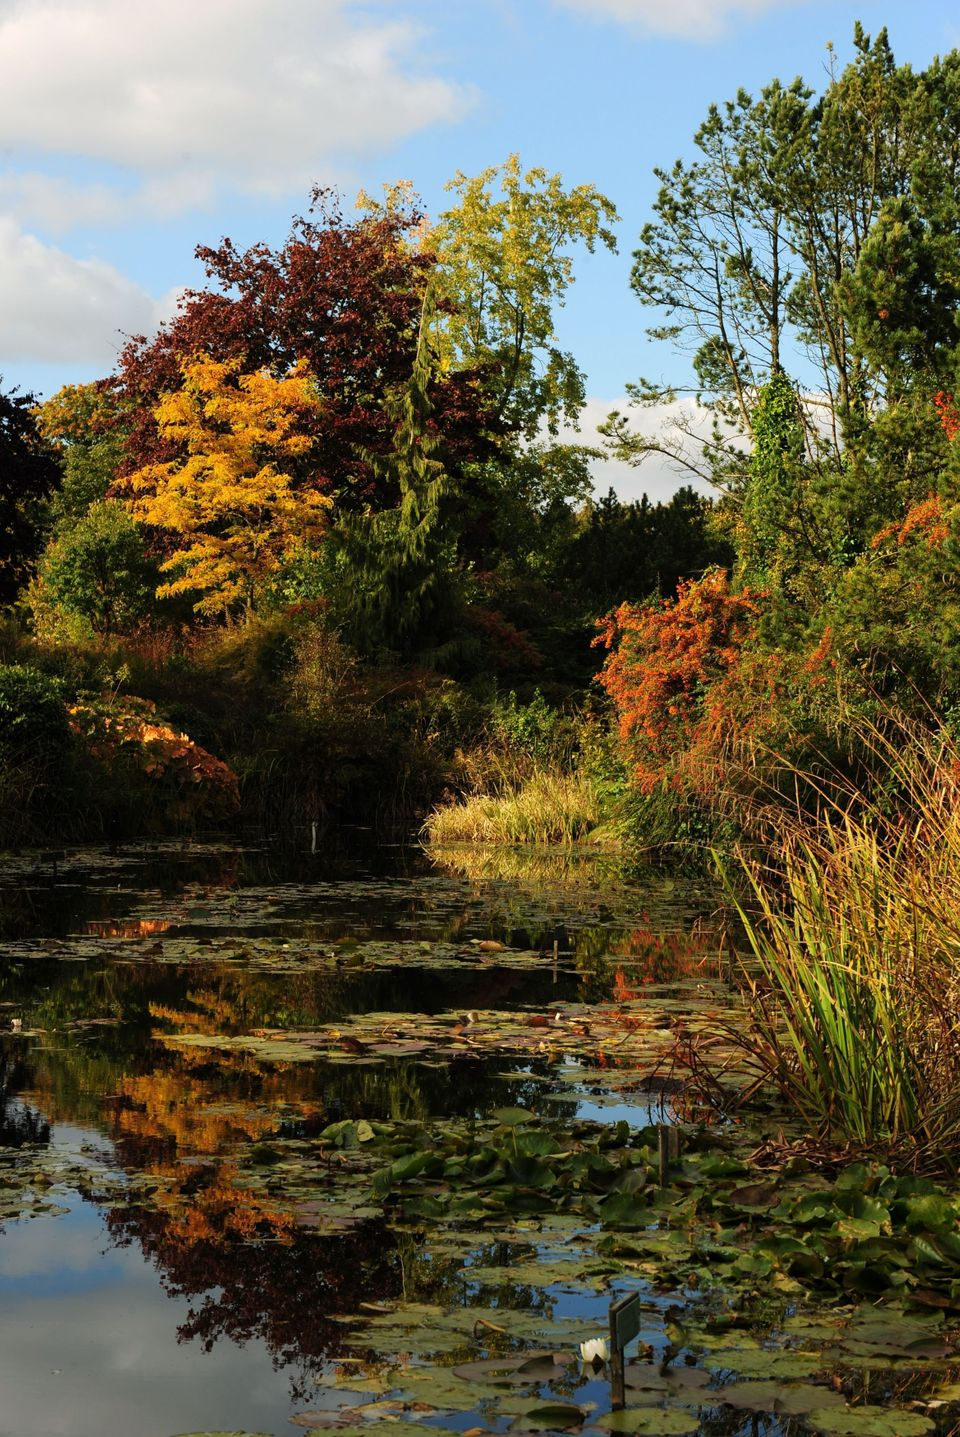 Autumn colours on display at Burnby Hall Gardens, Pocklington, East Yorkshire.